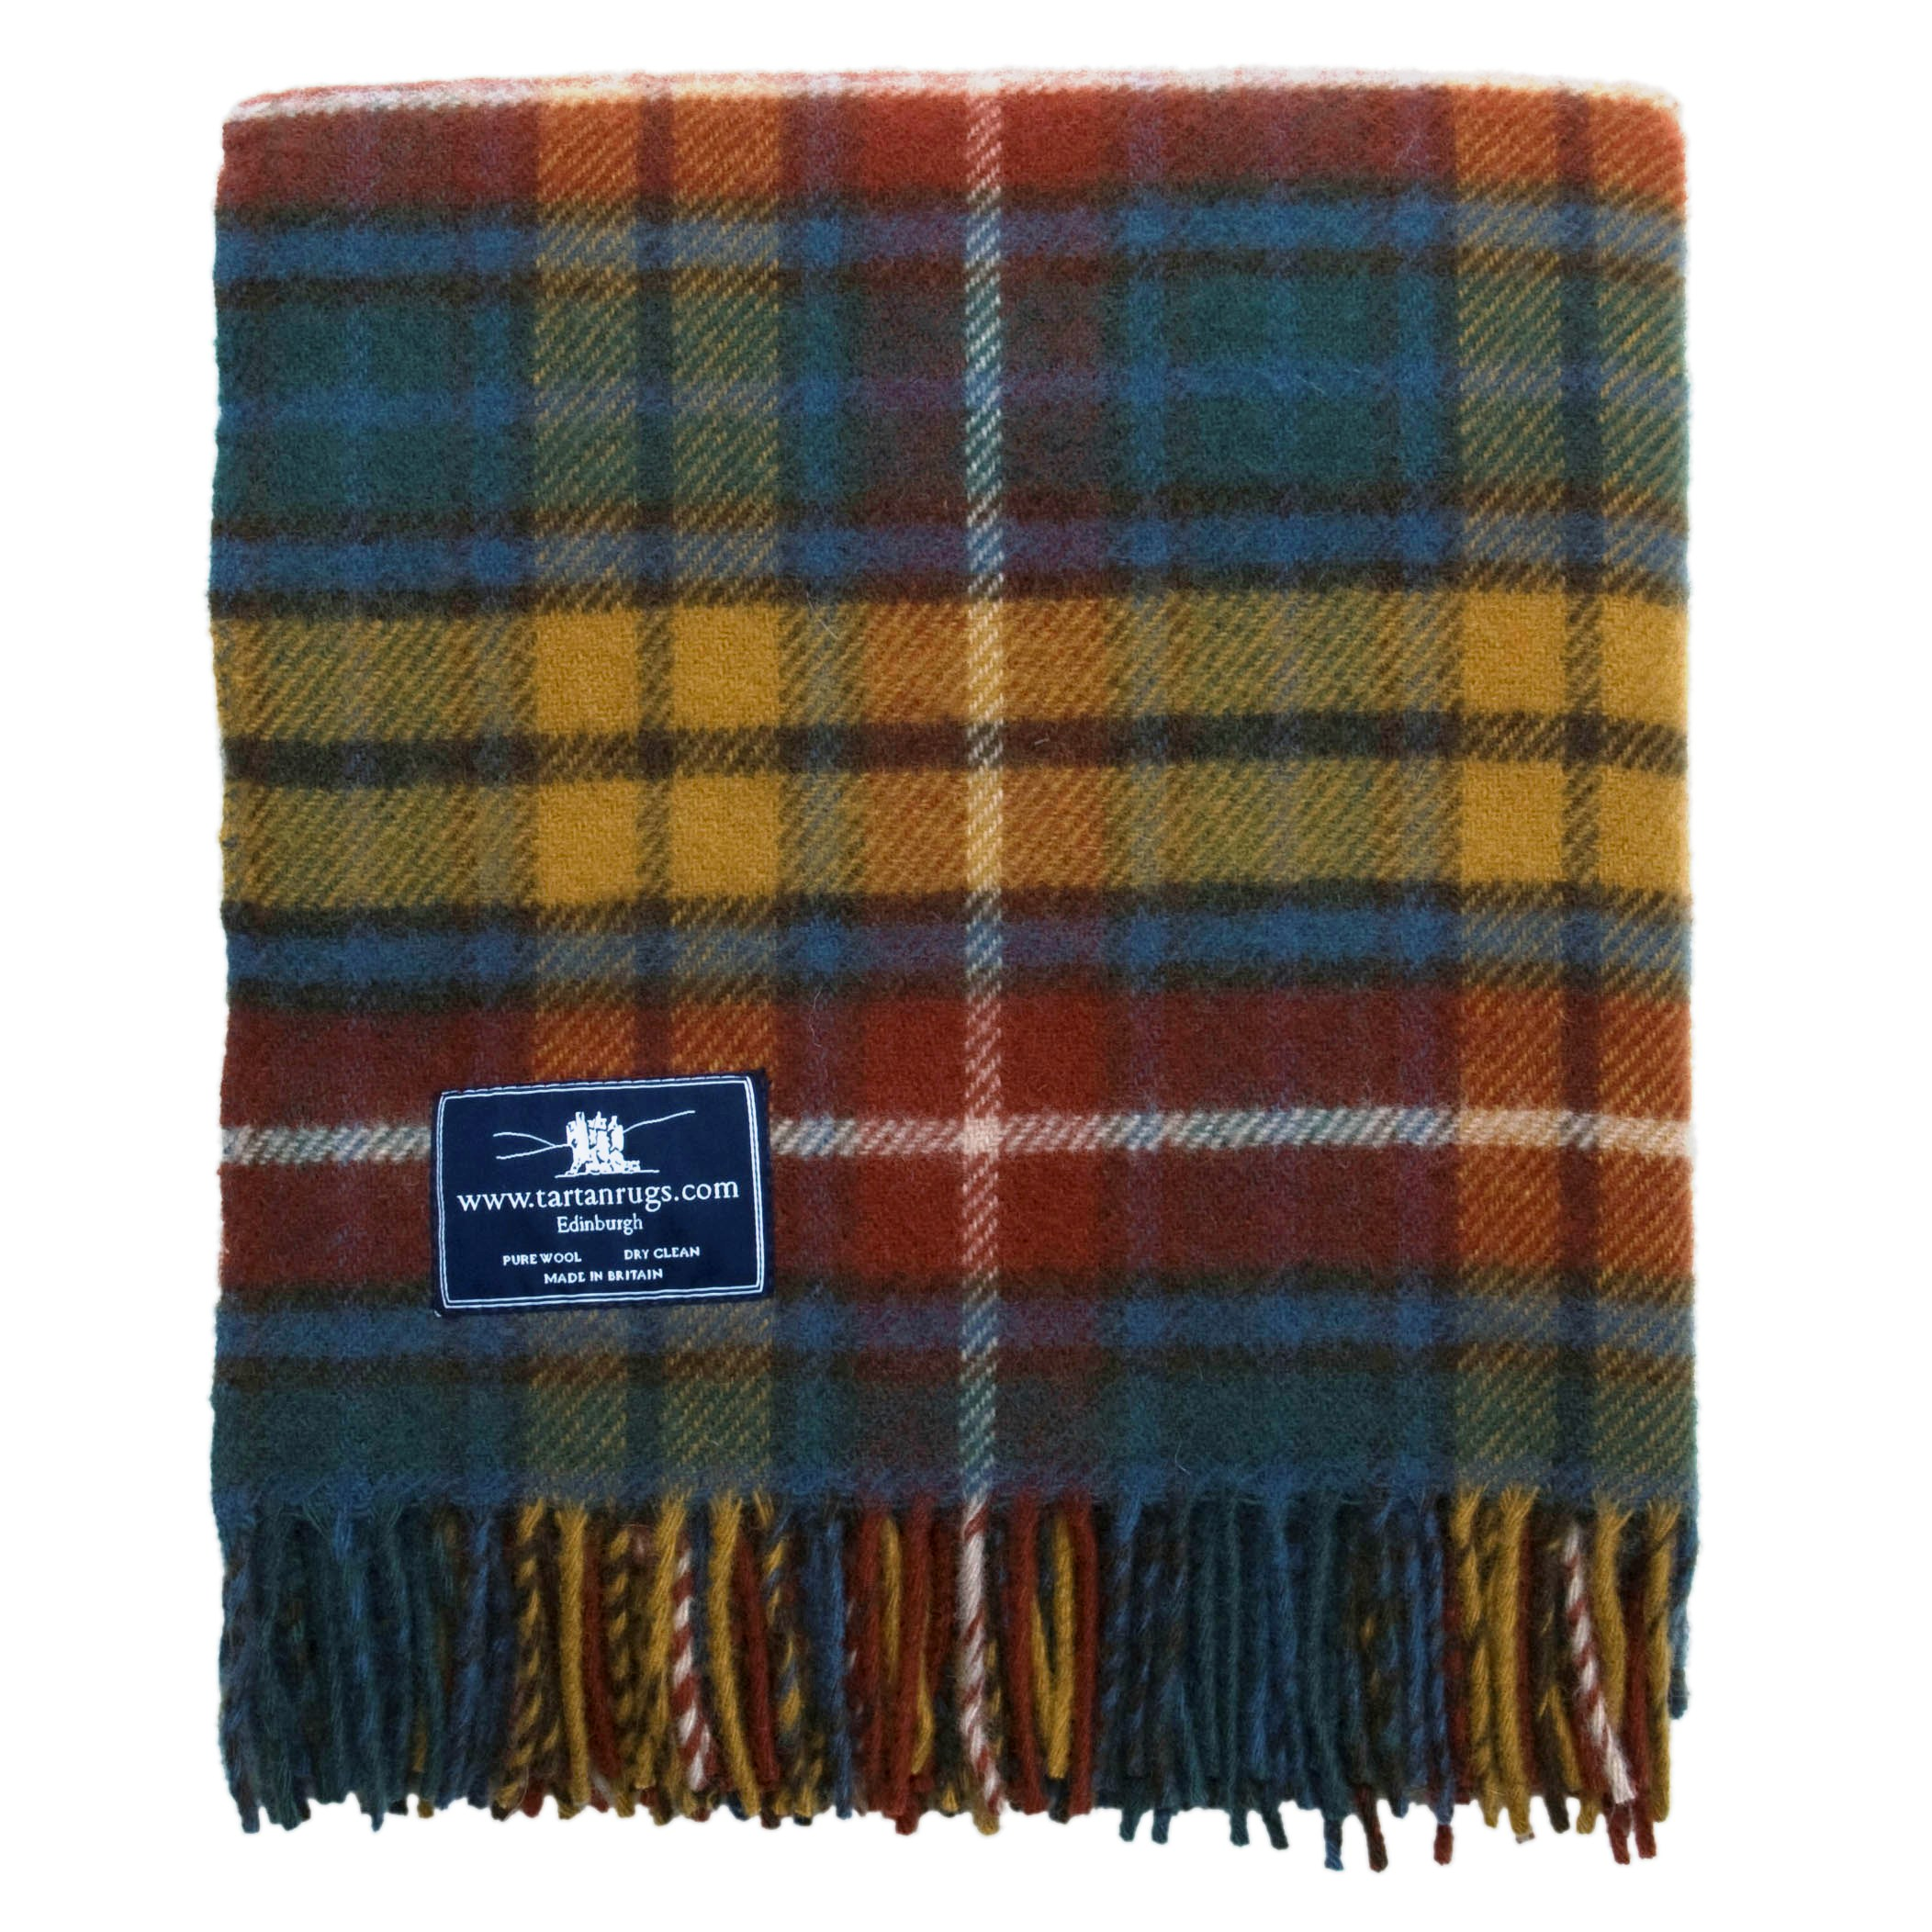 Tweedmill Antique Buchanan Tartan Premium Wool Travel Rug